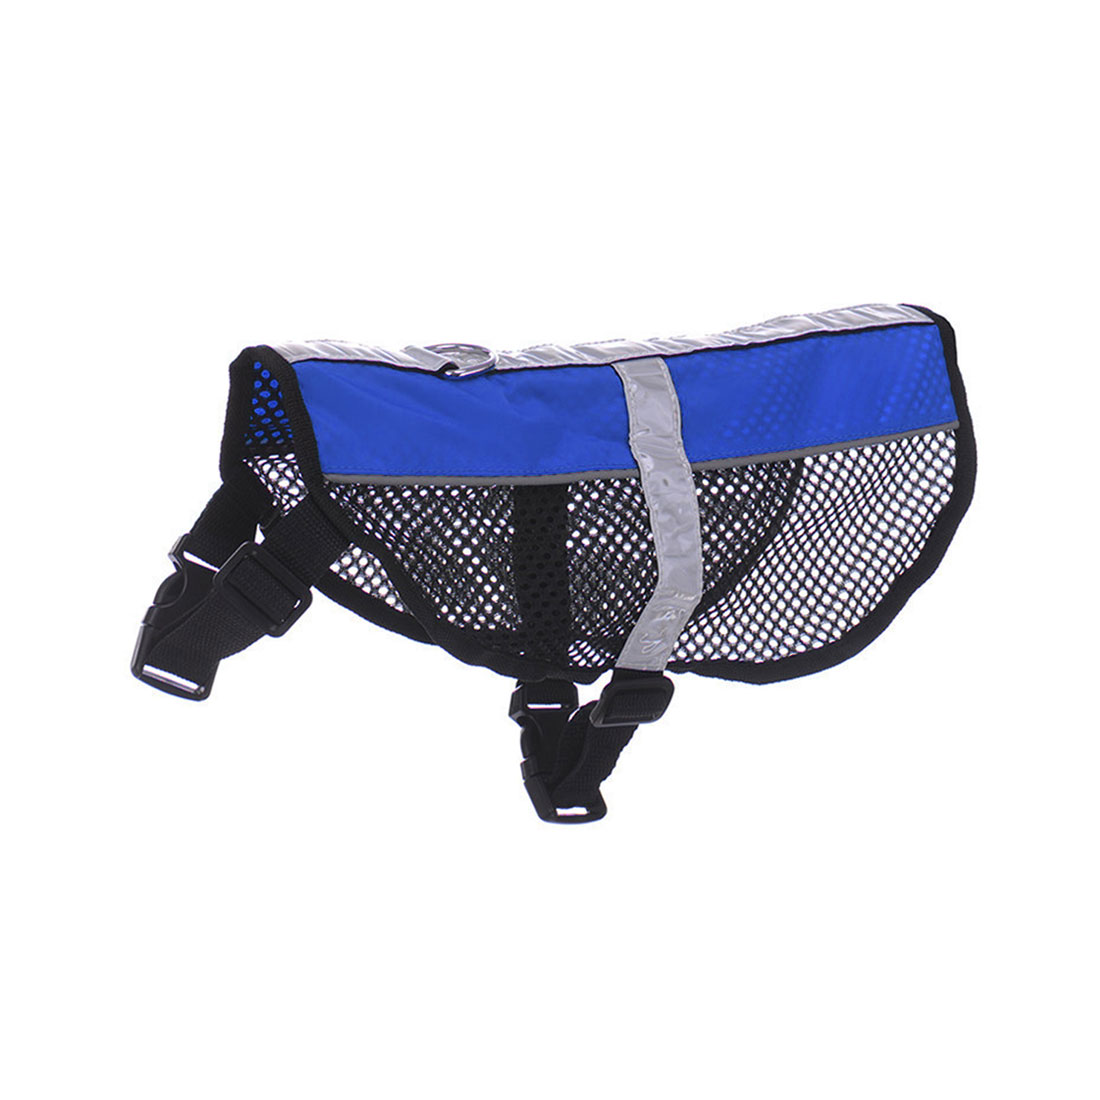 Service Dog Mesh Vest Harness Cool Comfort Nylon High Visibility Safety Jacket Blue S